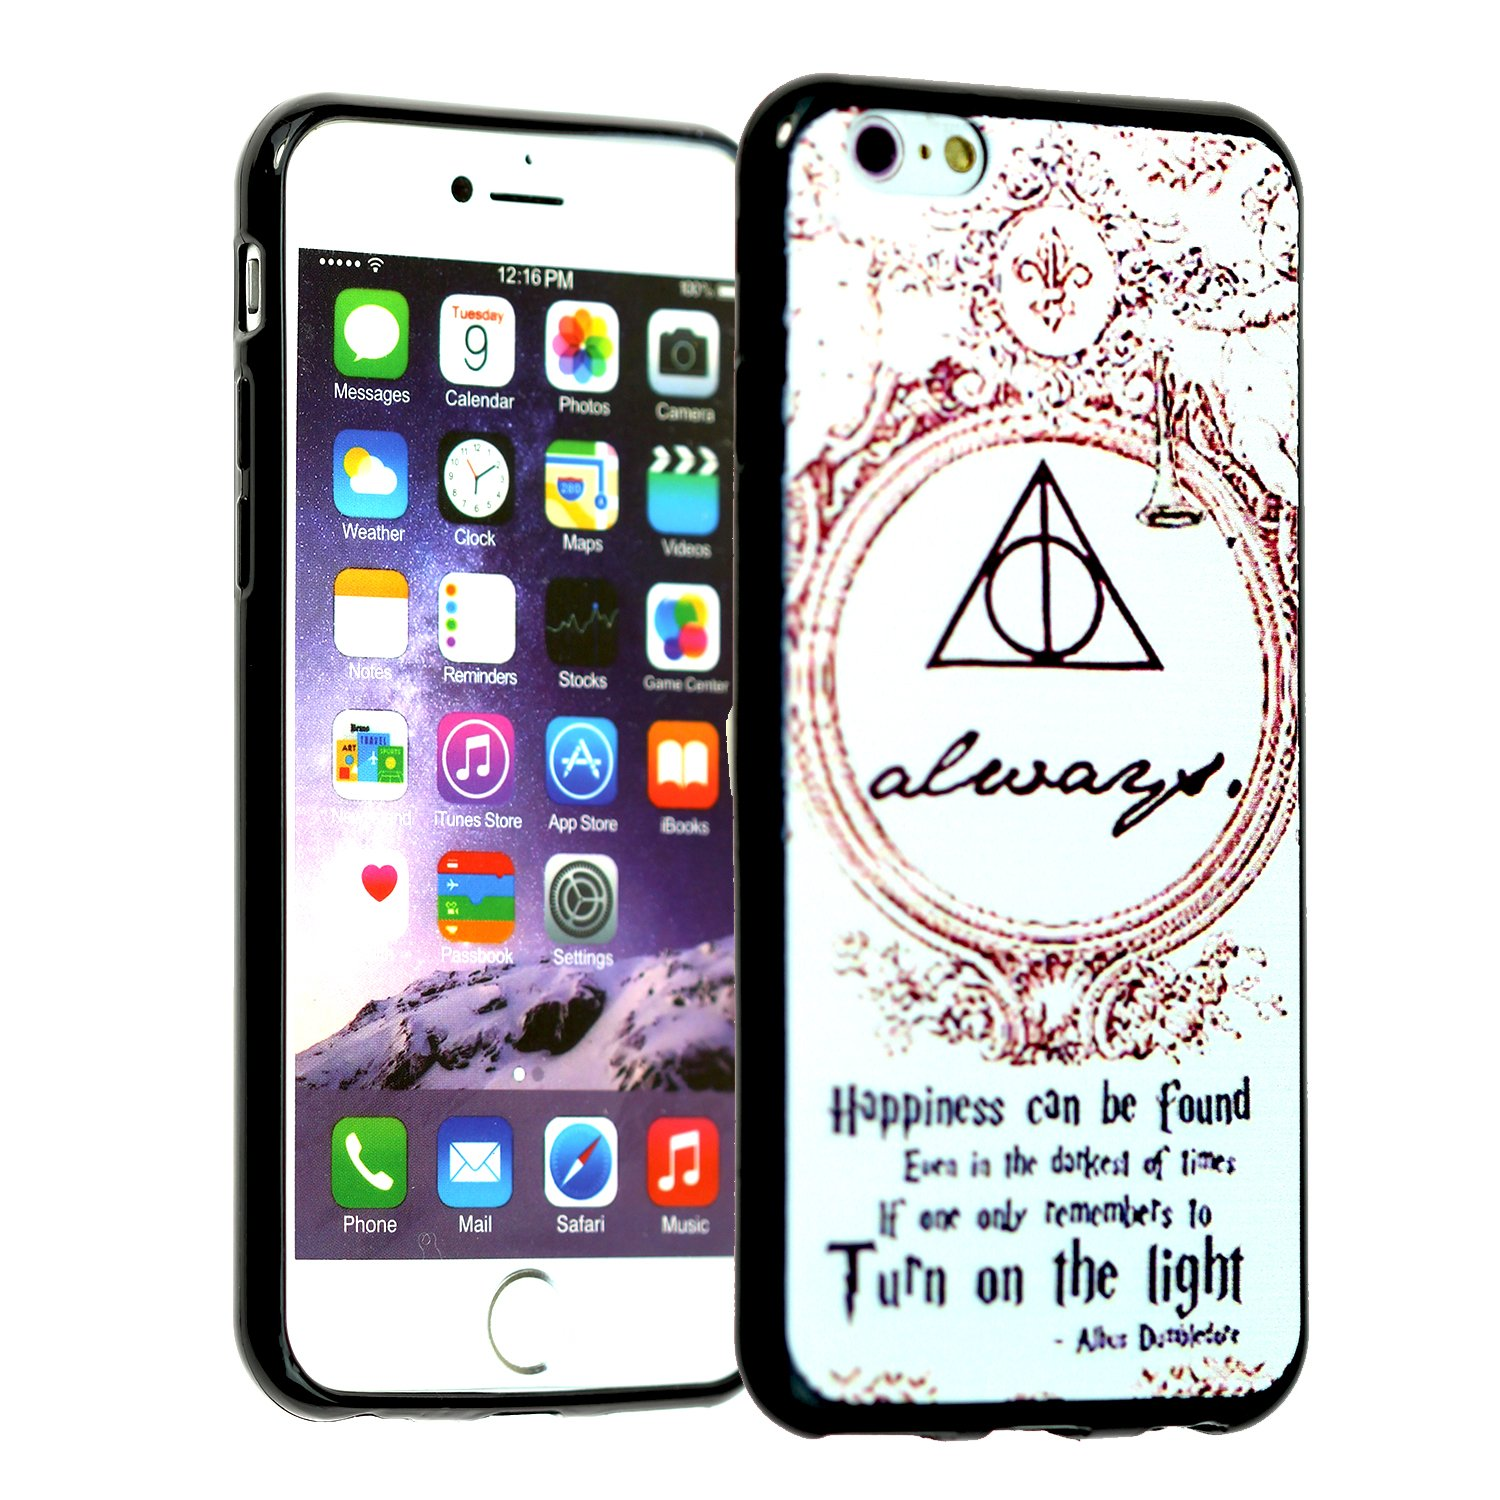 iPhone 6s Case, IMAGITOUCH iPhone 6 Harry Potter Always Anti-Scratch Shock Proof Soft Touch Slim Fit Flexible TPU Bumper Cover for iPhone 6 / 6s (4.7 inch) - Harry Potter Dumbledore Always TPU